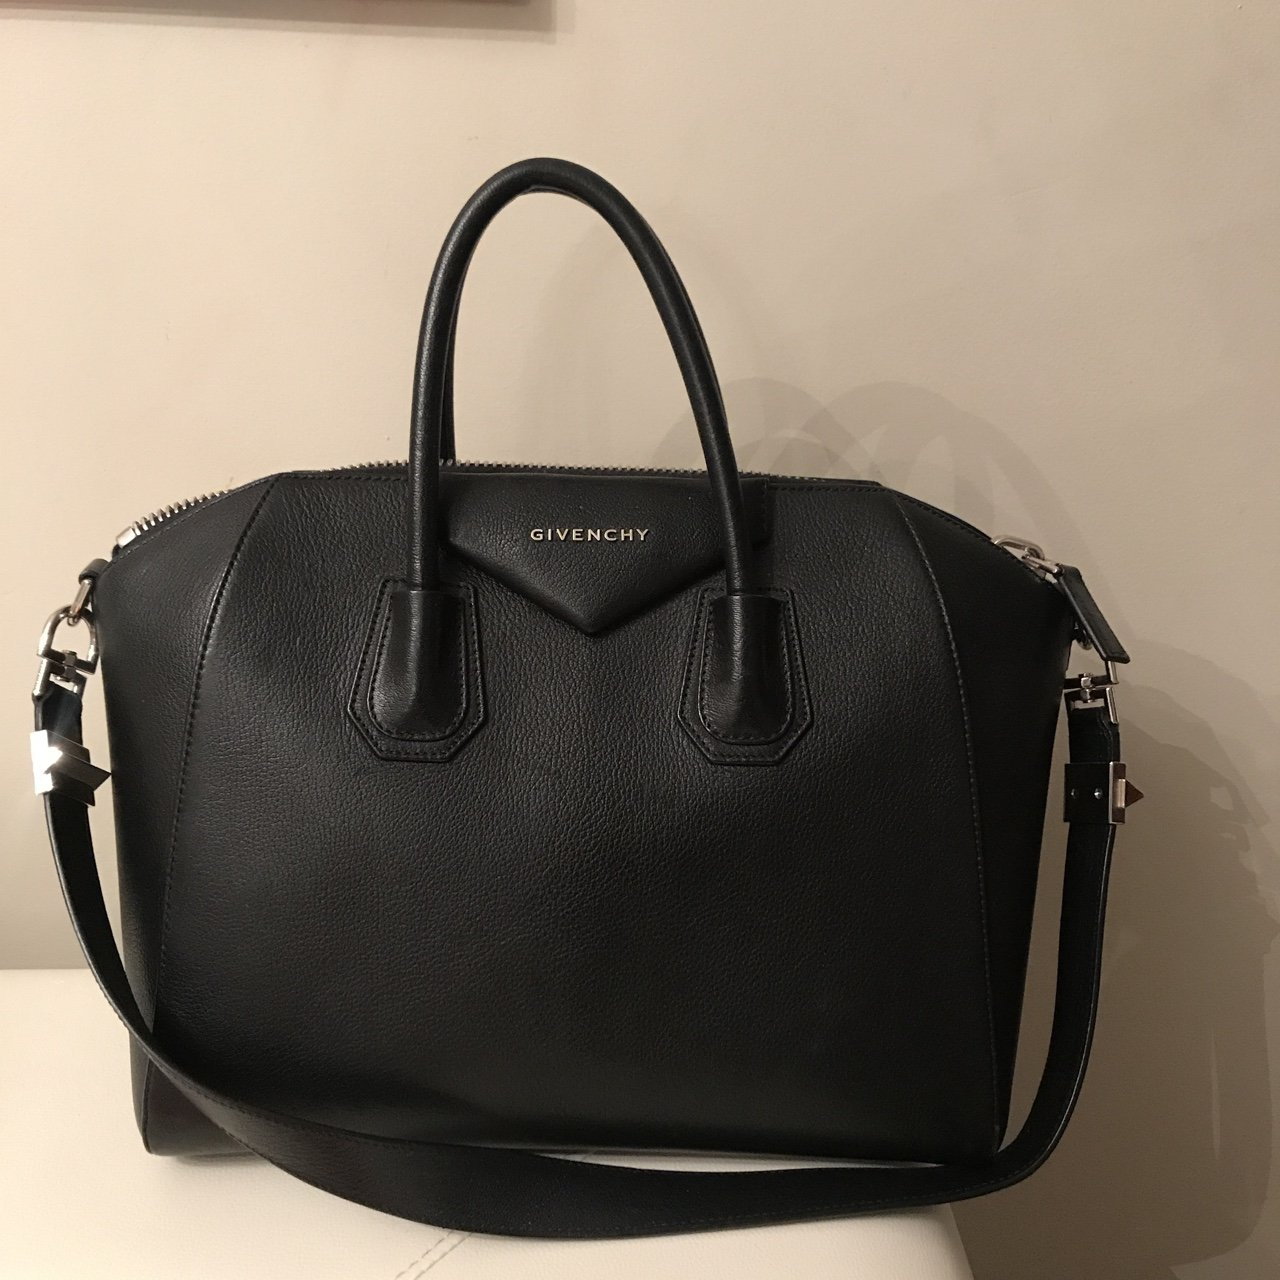 9837d4a0475b Givenchy bag brand new used once Authentic bought it in I - Depop